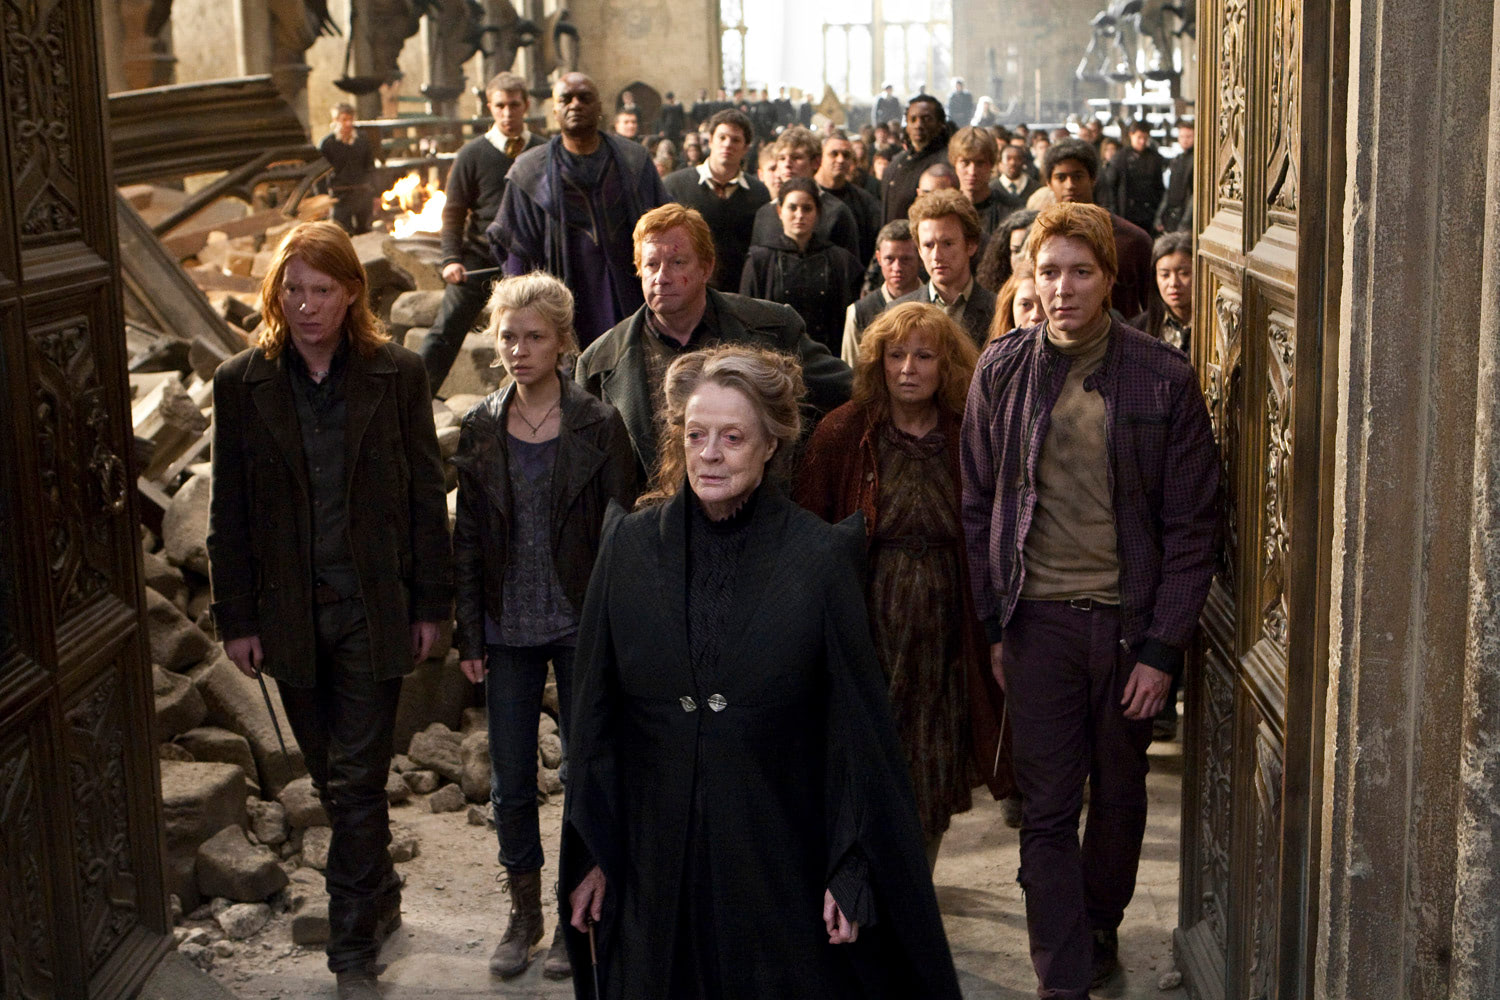 The Order of the Phoenix leave the Great Hall